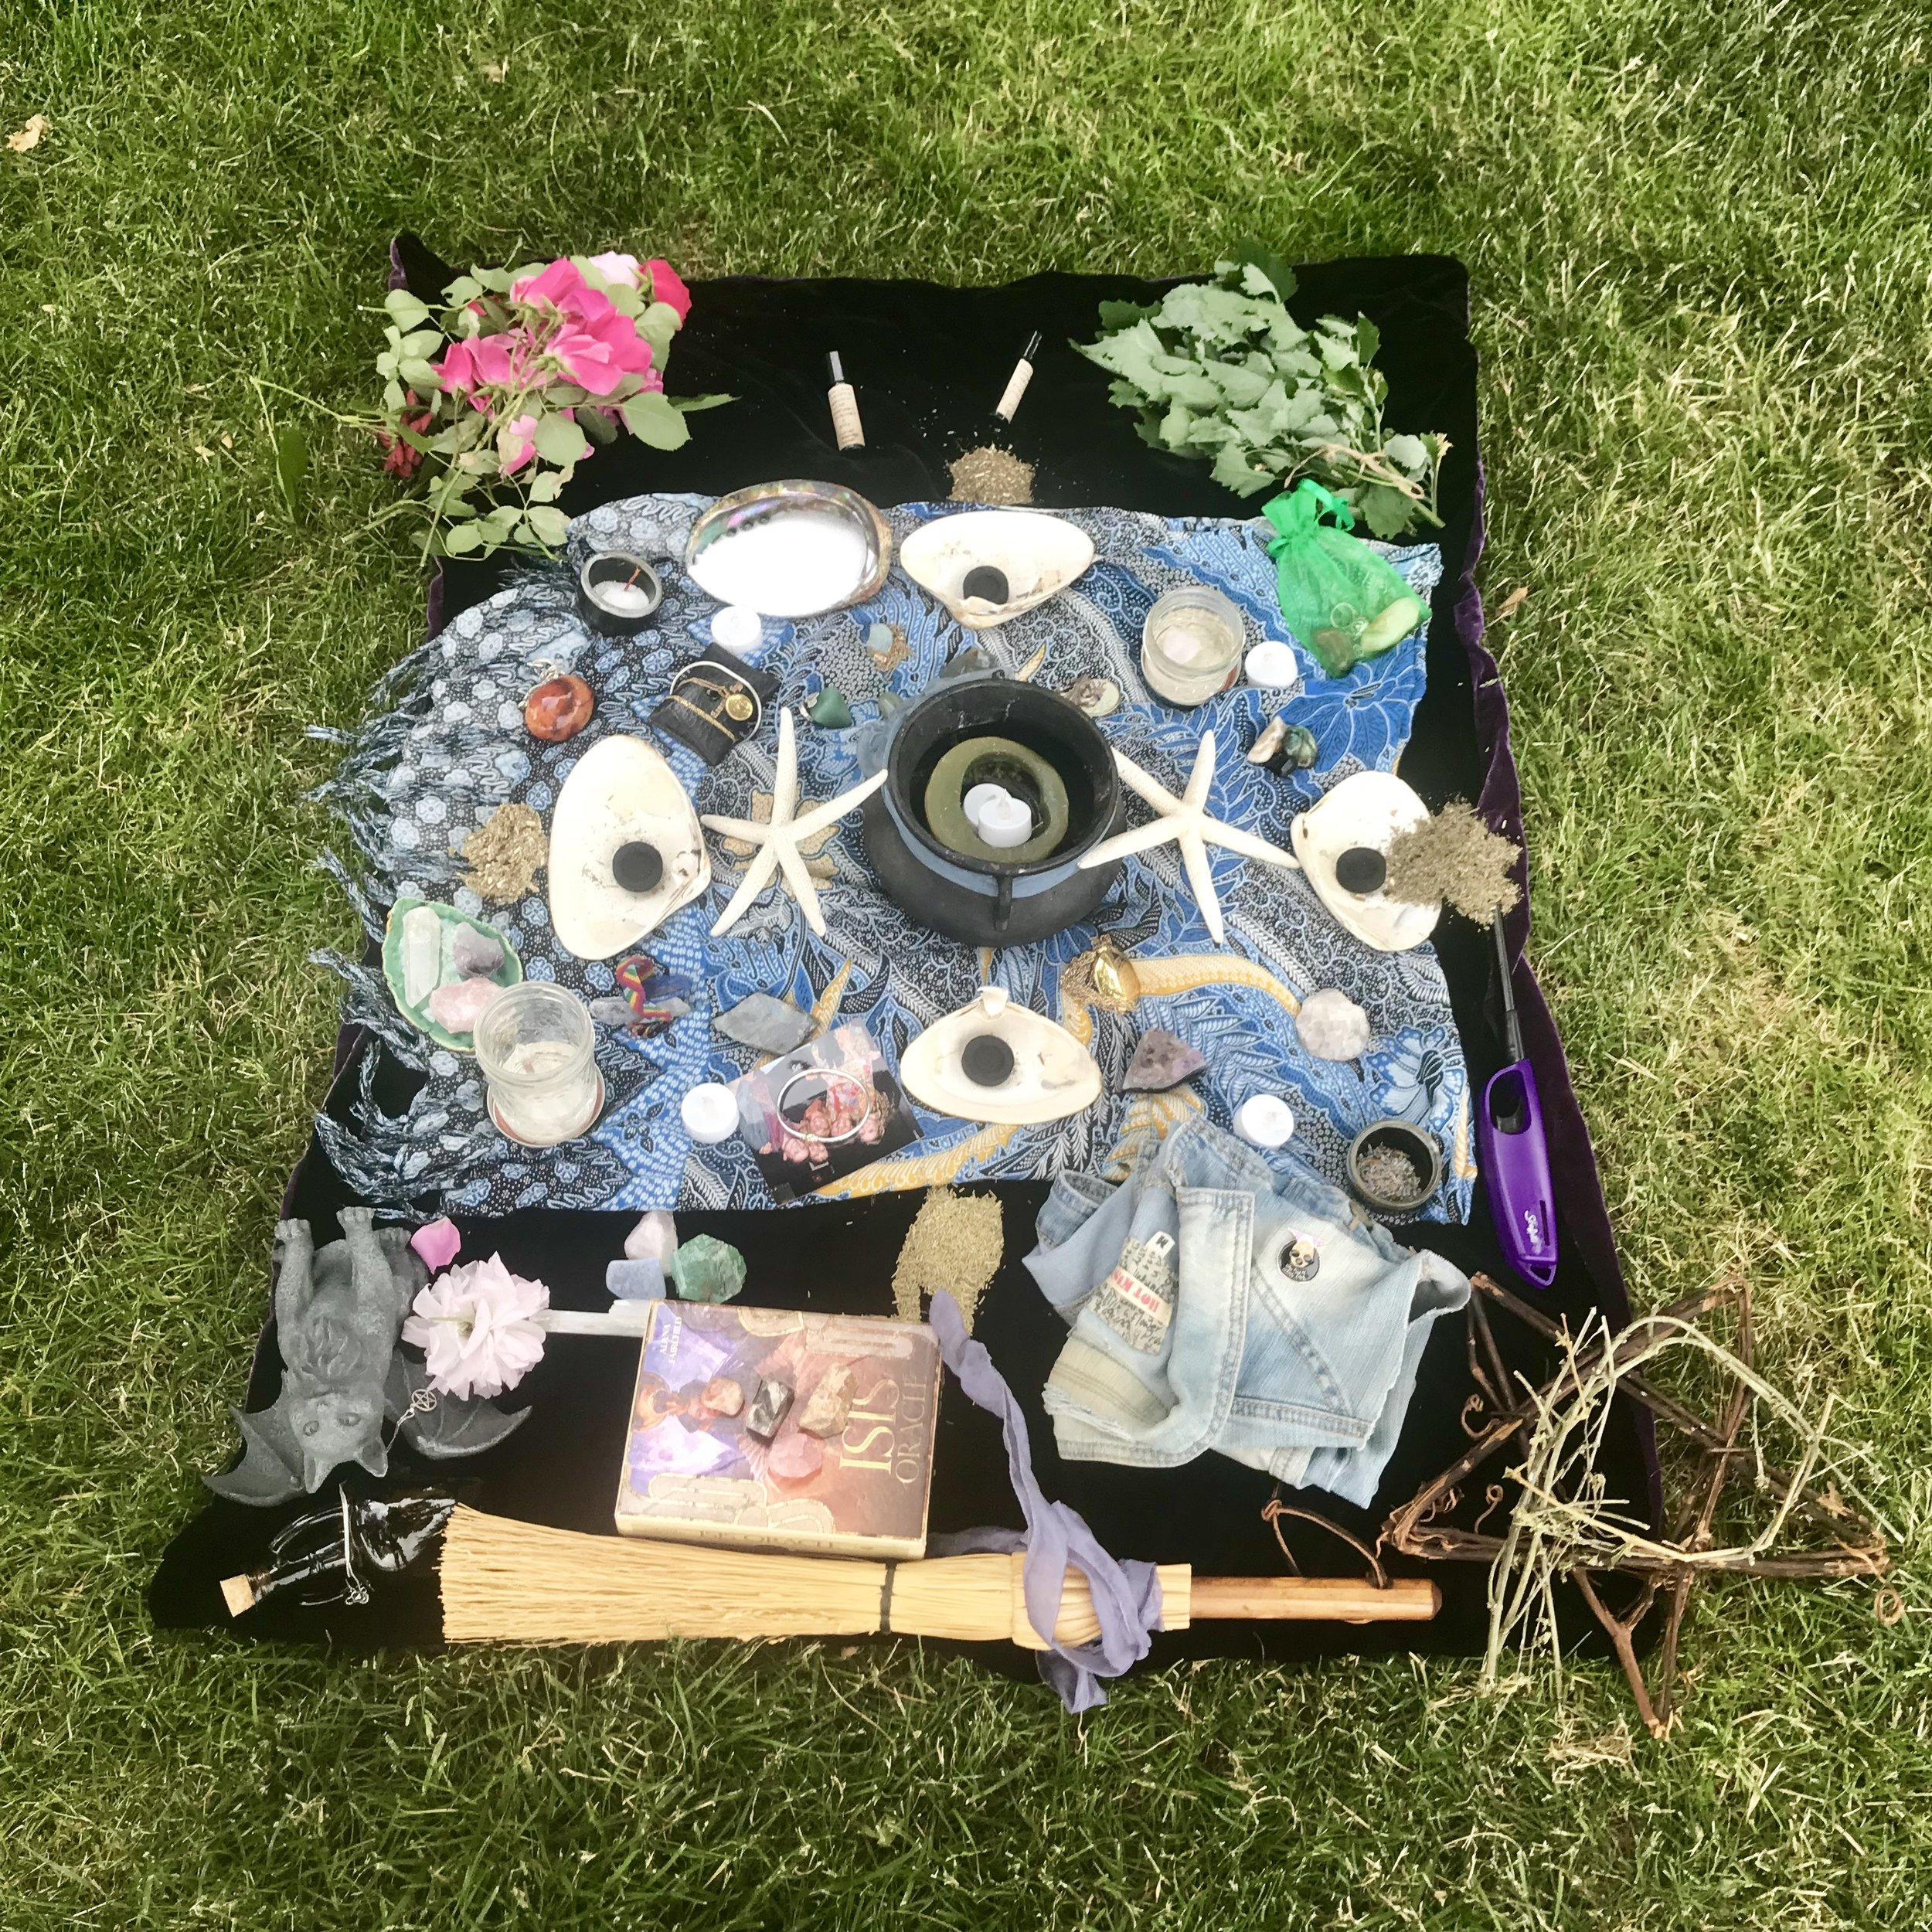 The summer solstice altar.